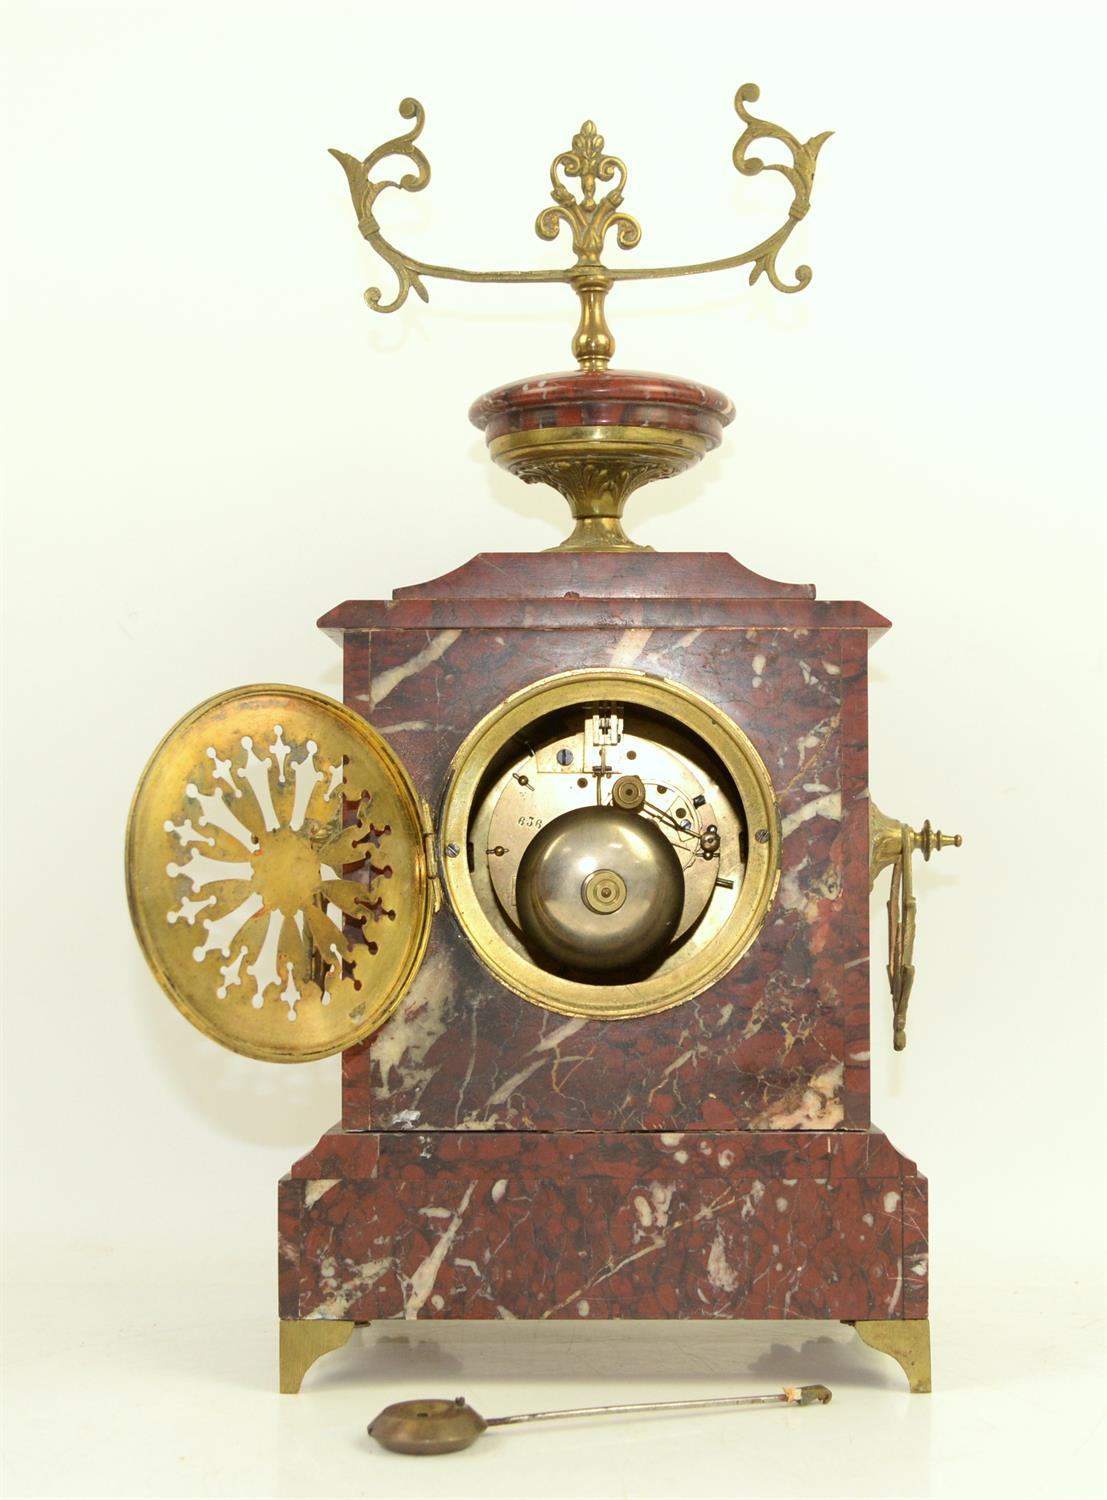 French rouge marble 8 day clock garniture by Japy Freres striking a bell on hour and half hour, - Image 3 of 3